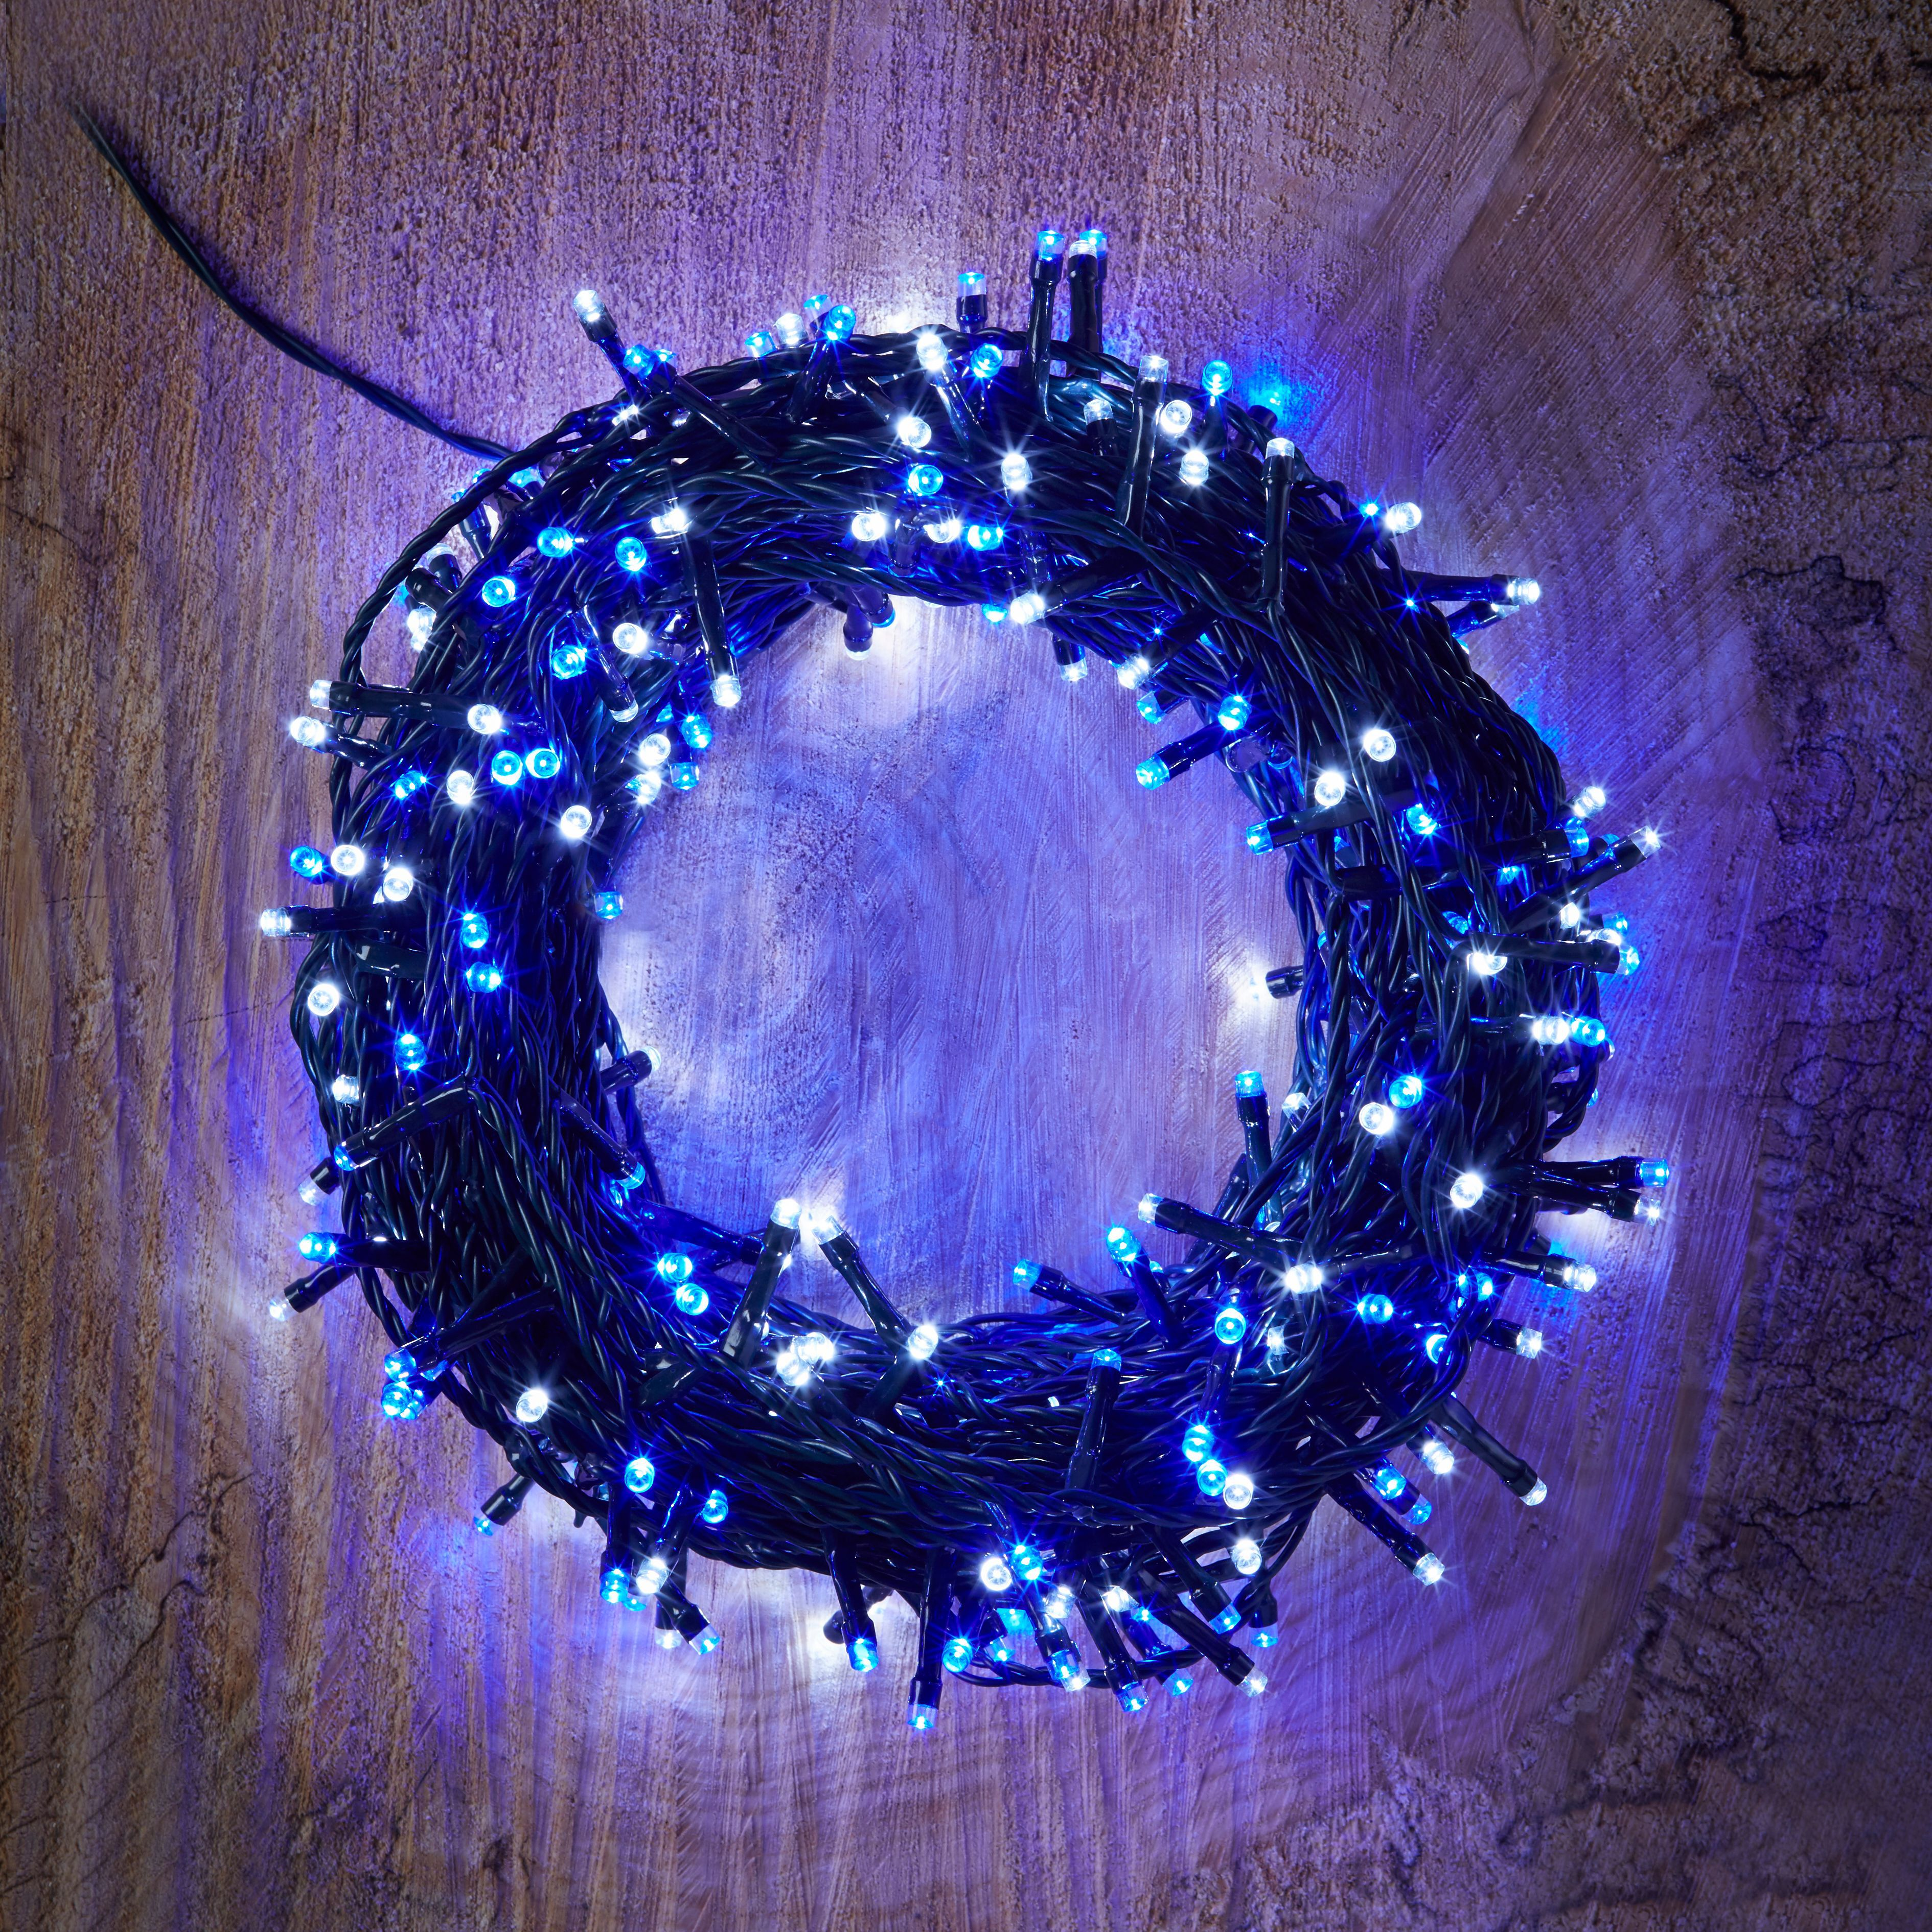 Led String Lights Diy : 400 Blue & White LED String Lights Departments DIY at B&Q